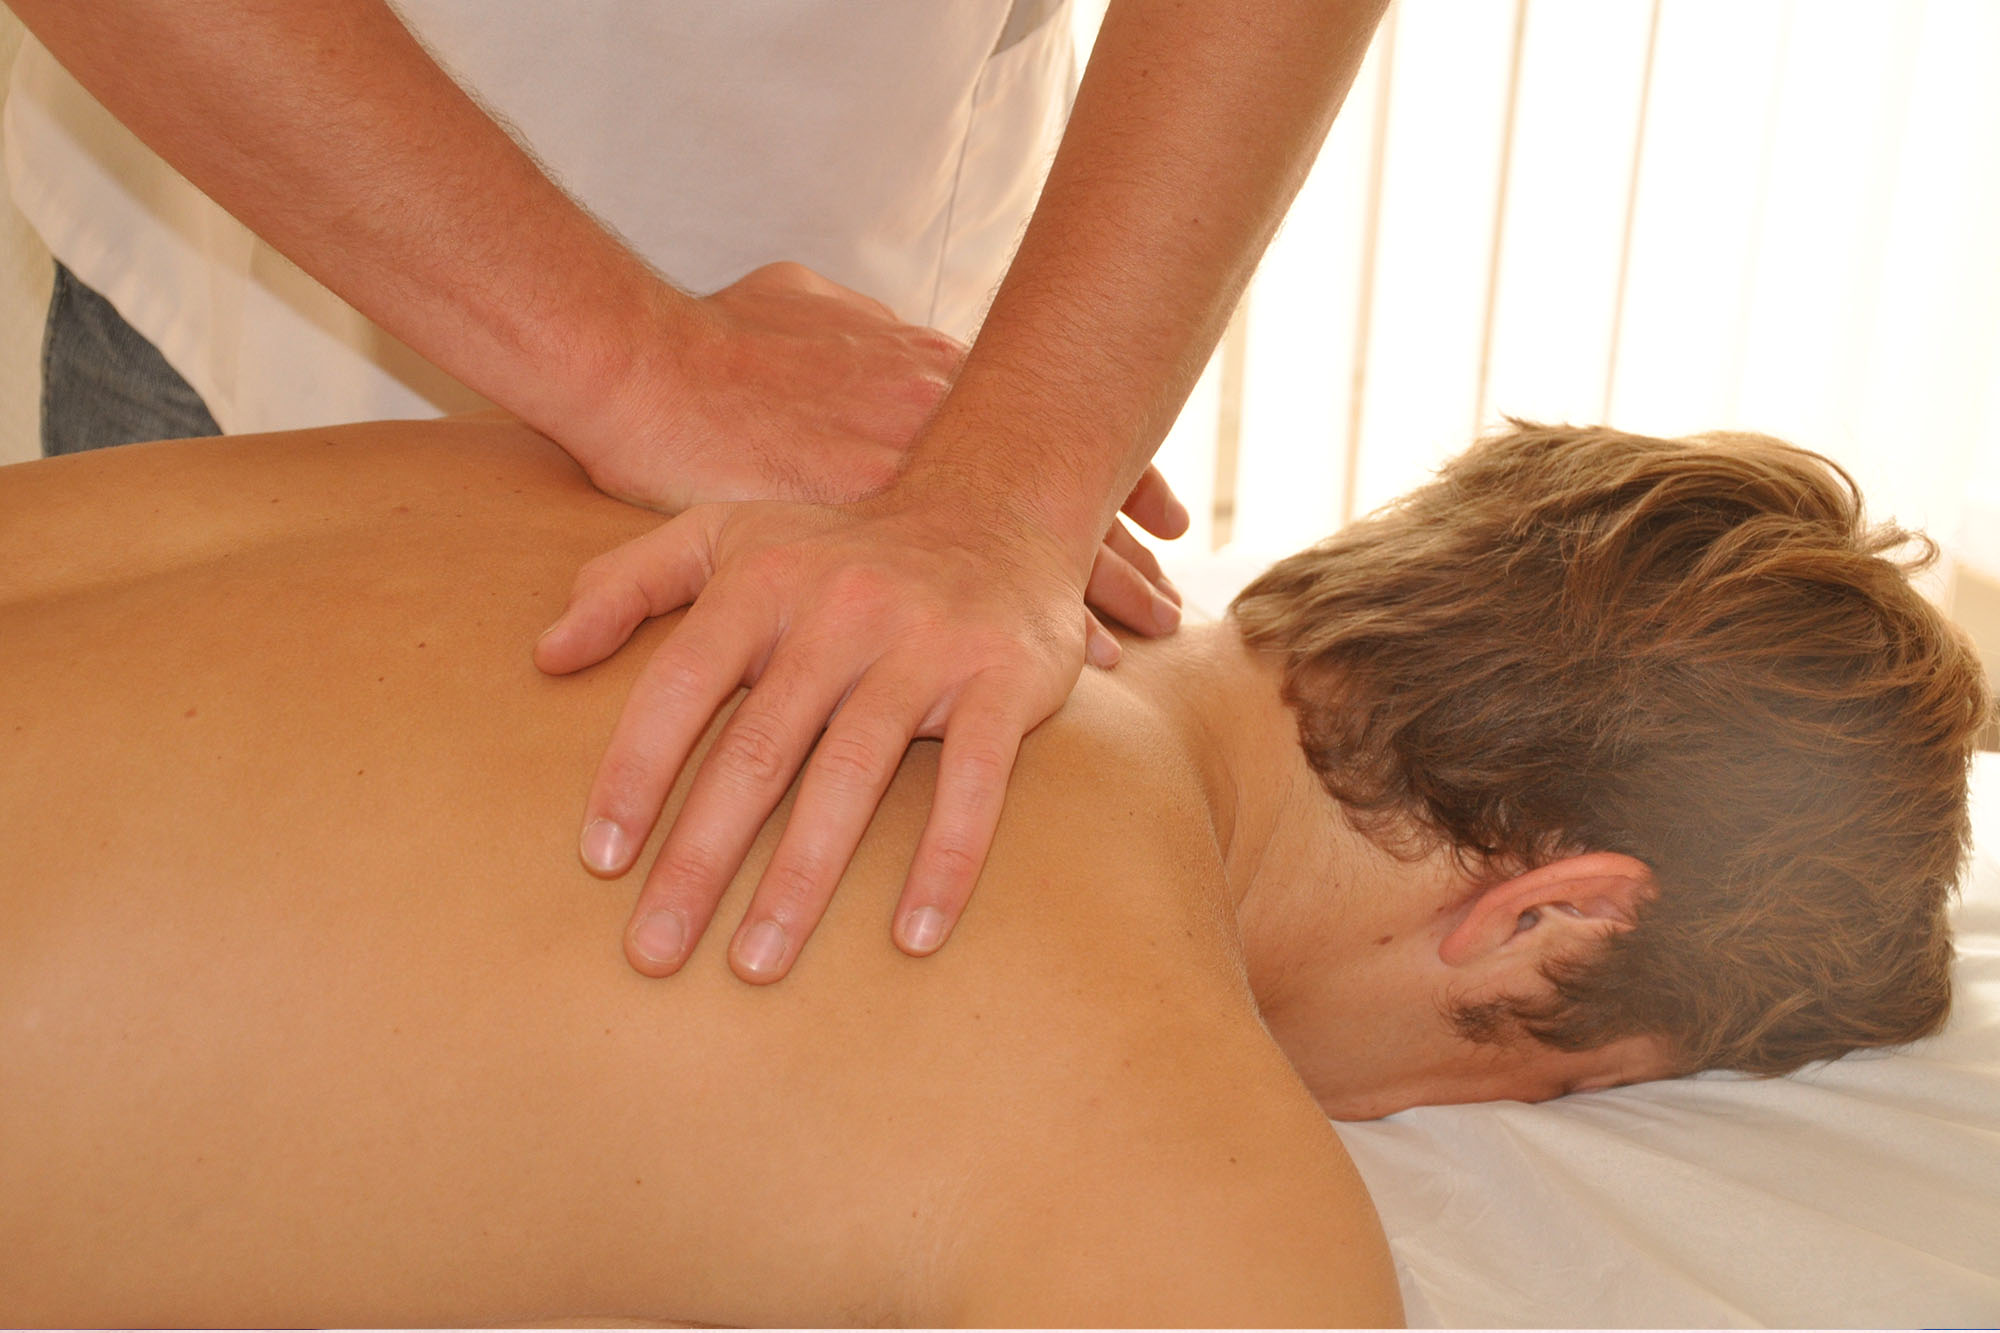 Manipulation in osteopathy